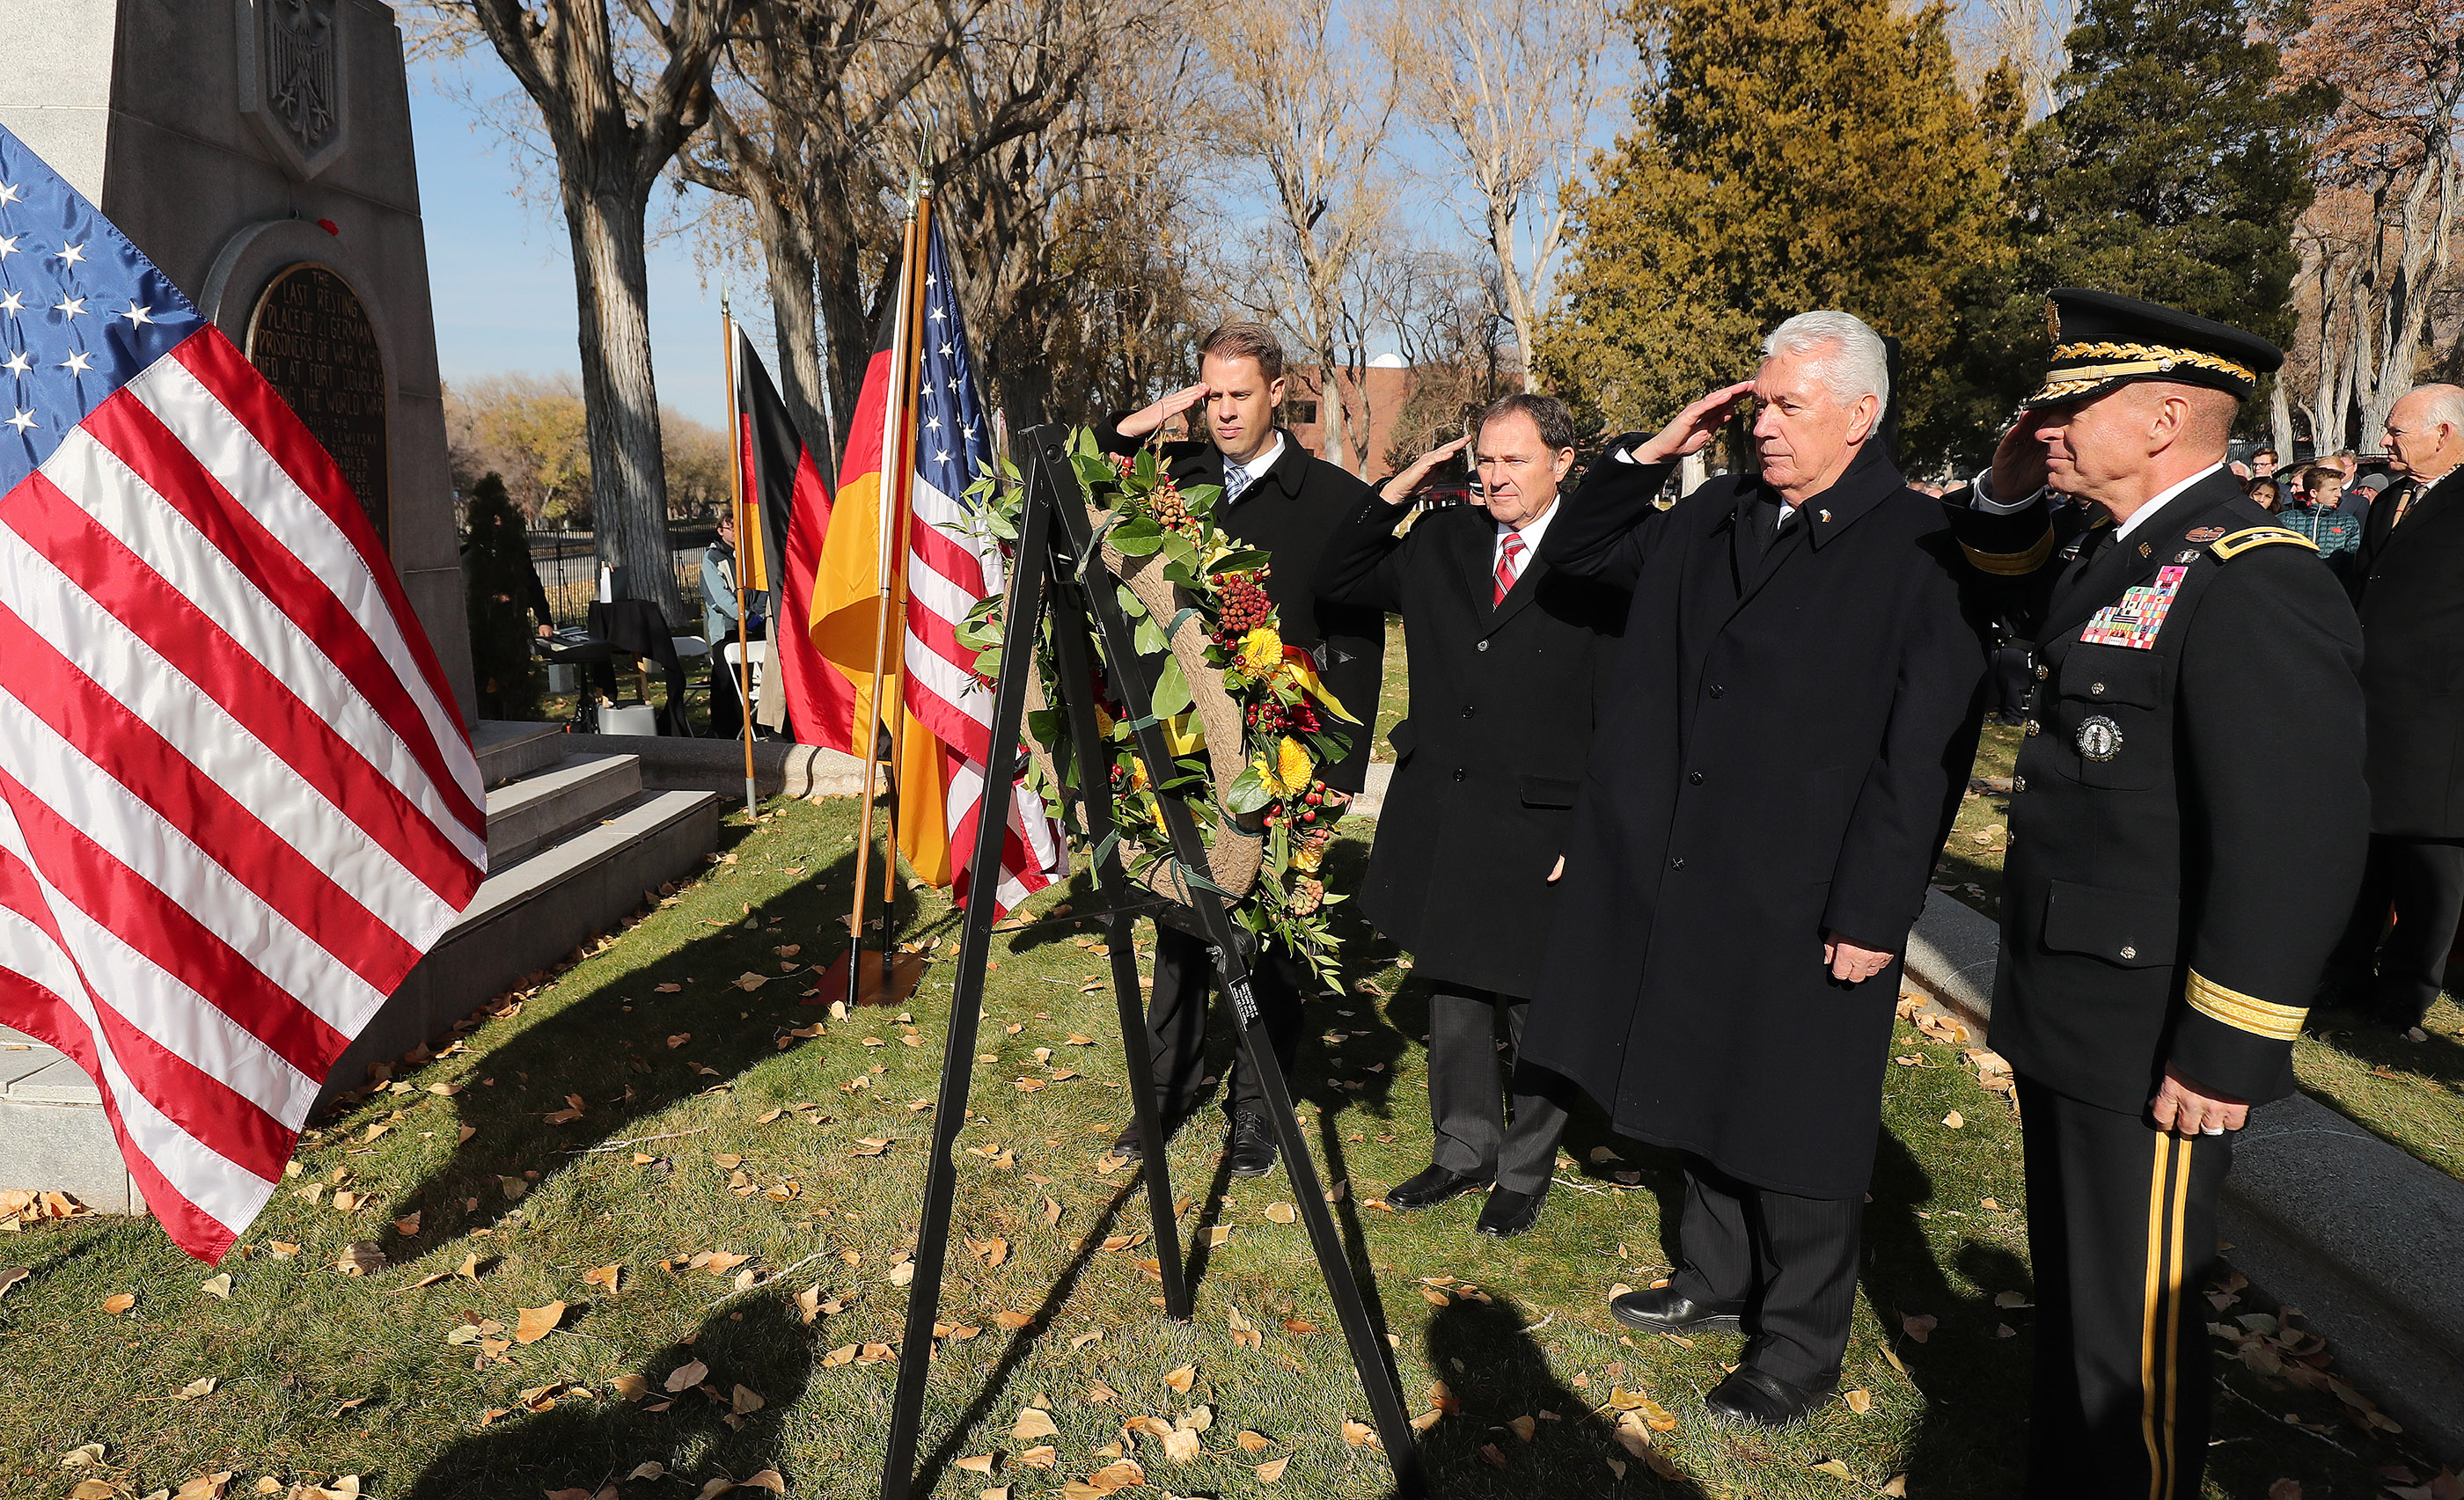 Gov. Gary Herbert , Elder Dieter F. Uchtdorf of The Church of Jesus Christ of Latter-day Saints' Quorum of the Twelve Apostles, General Adjutant General of the Utah National Guard Jefferson Burton and James Burton salute after placing a wreath during the German Day of Remembrance (Volkstrauertag) at Fort Douglas Military Cemetery in Salt Lake City on Sunday, Nov. 18, 2018.